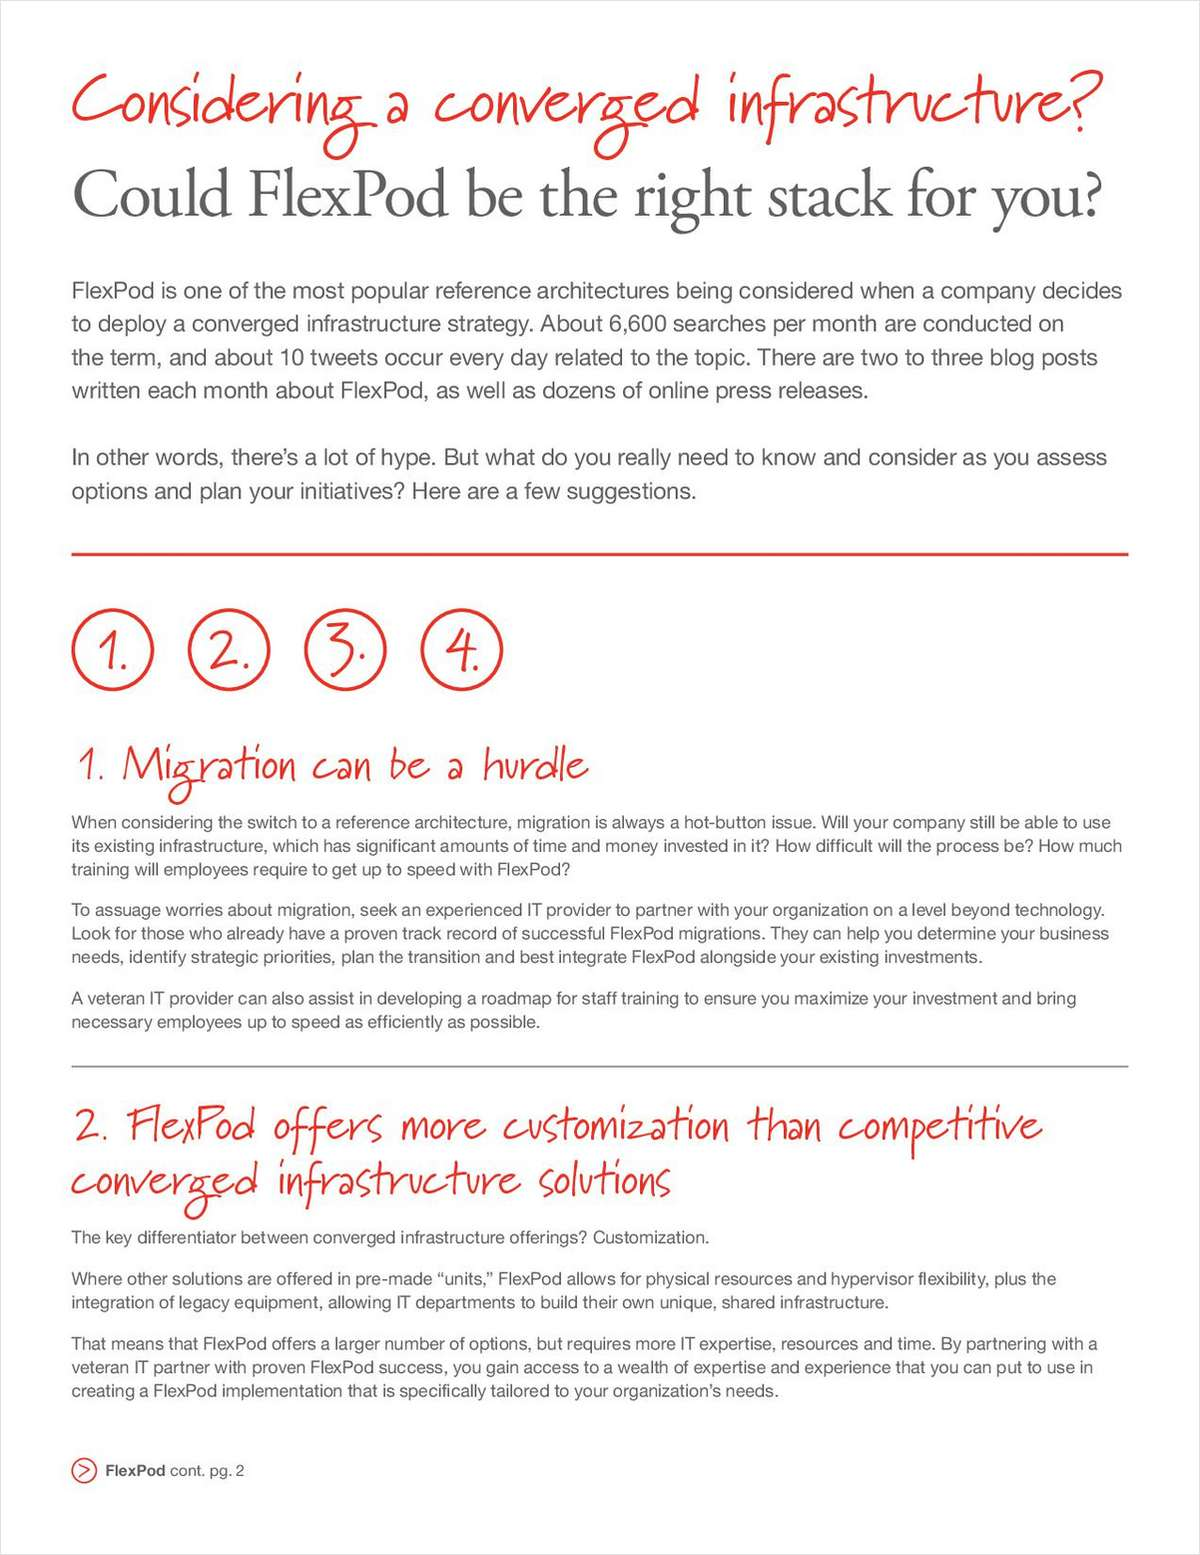 Considering a Converged Infrastructure? Could FlexPod be the Right Stack for You?